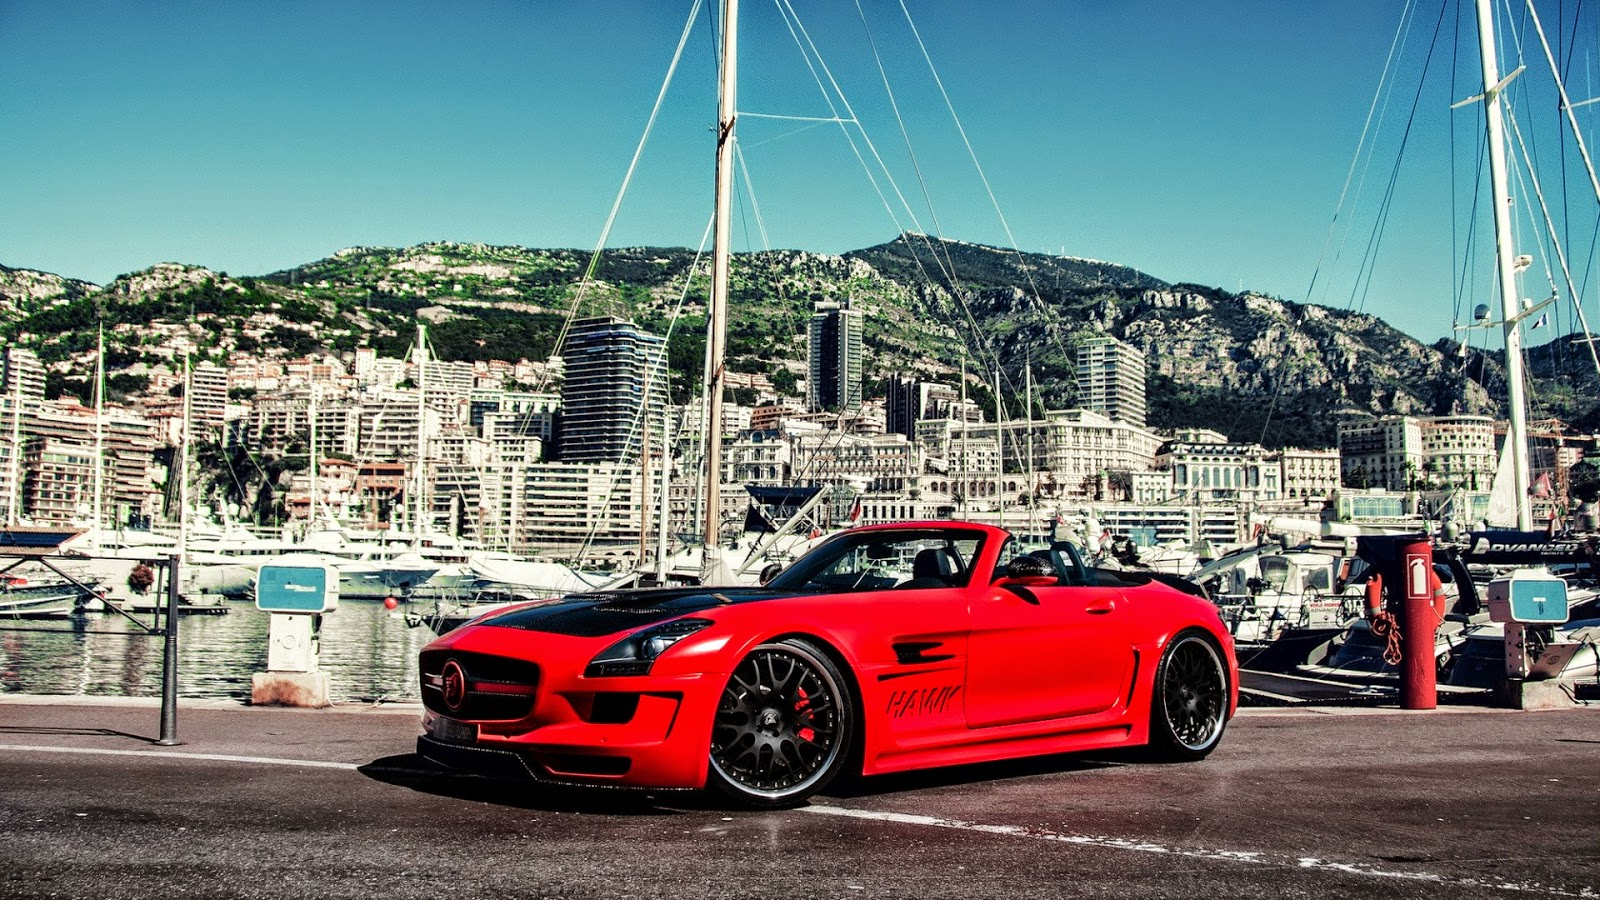 Mercedes w210 tuning 2 tuning cars - Sls Roadster